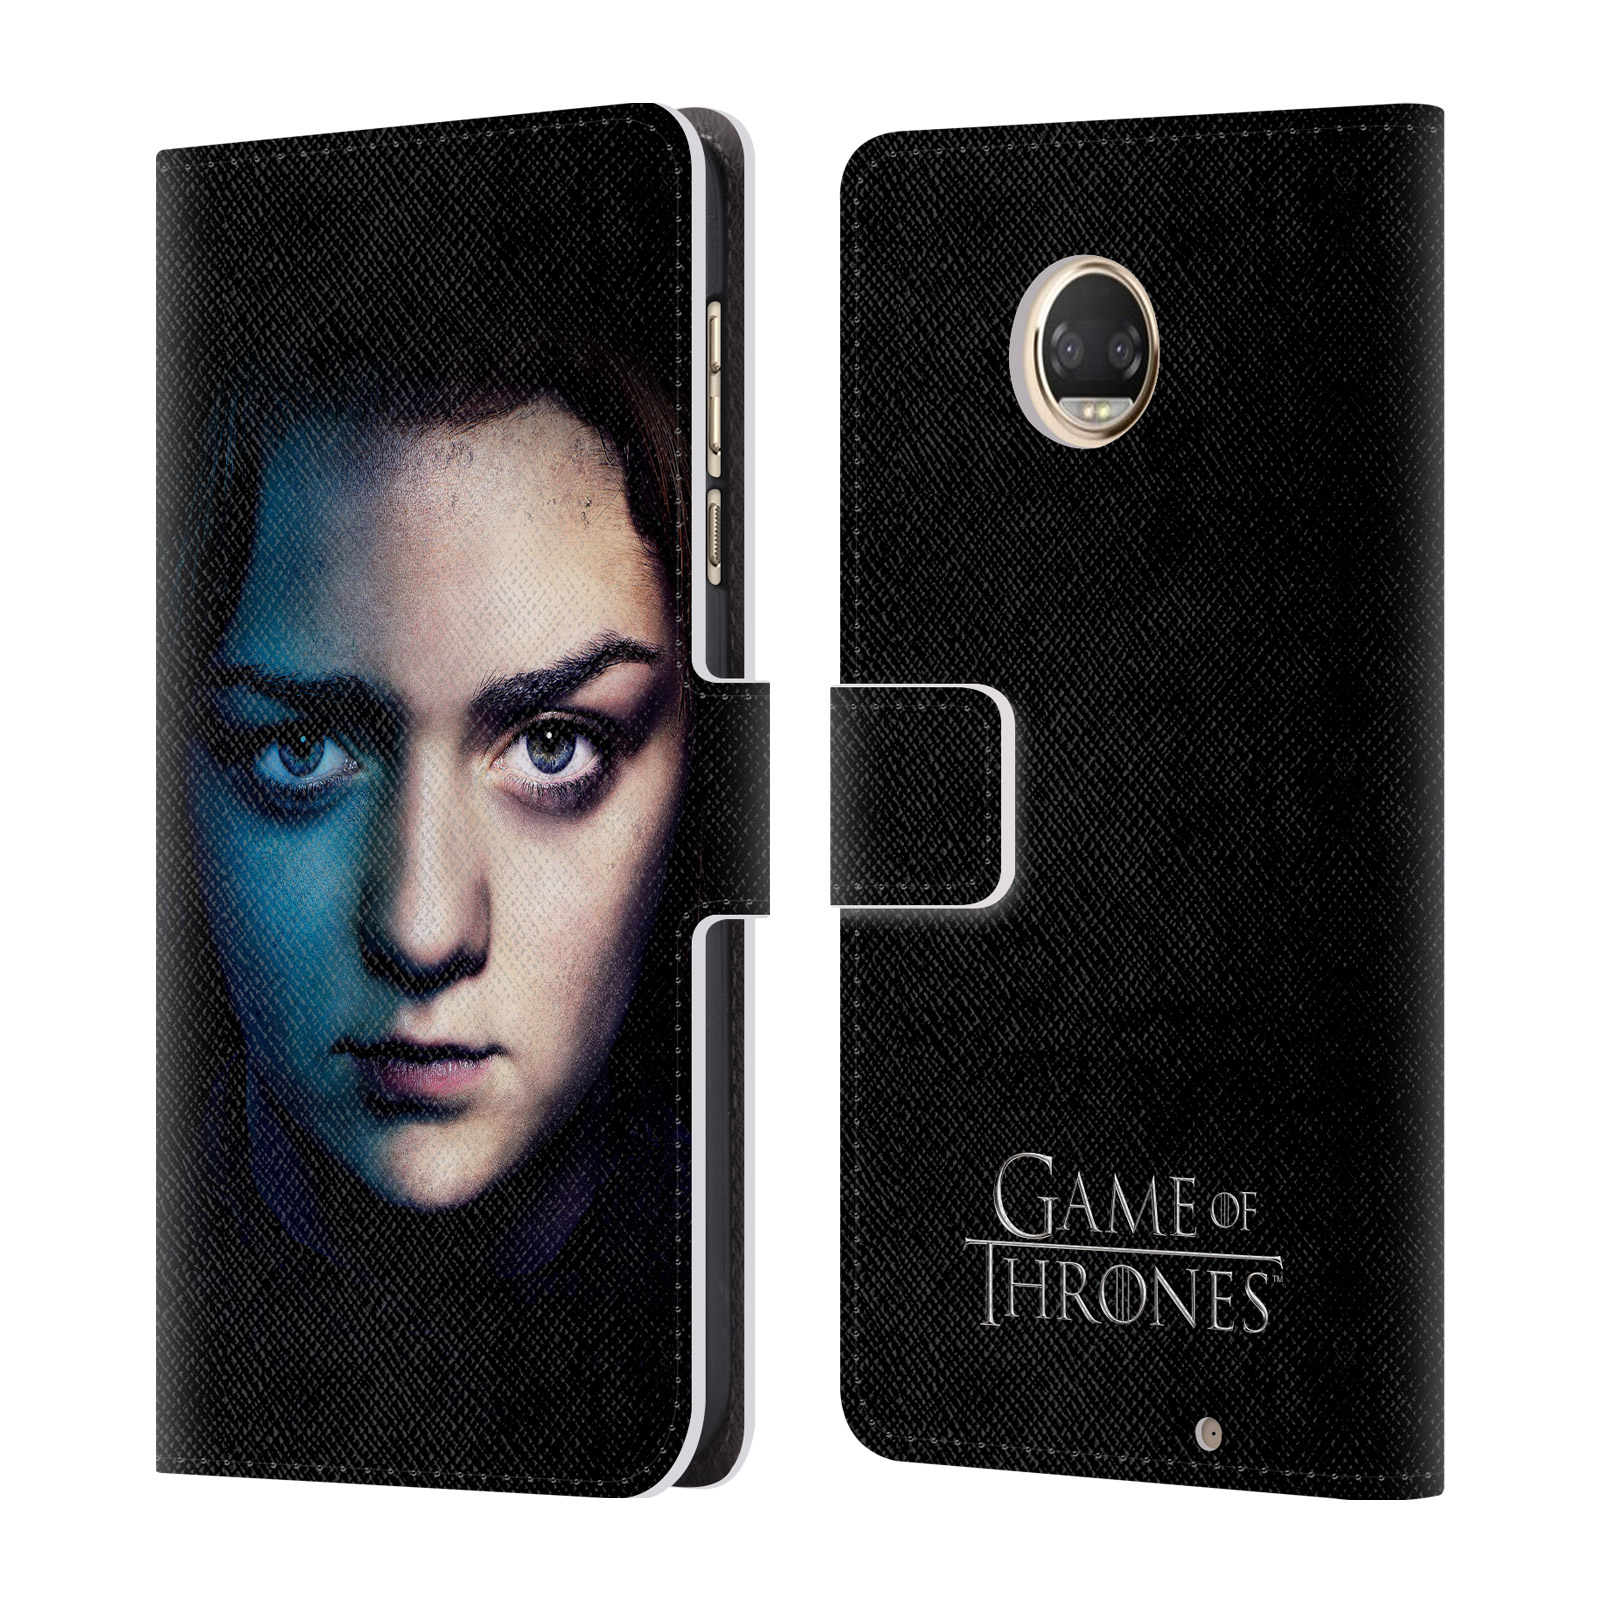 HBO-GAME-OF-THRONES-VALAR-MORGHULIS-LEATHER-BOOK-WALLET-CASE-FOR-MOTOROLA-PHONES